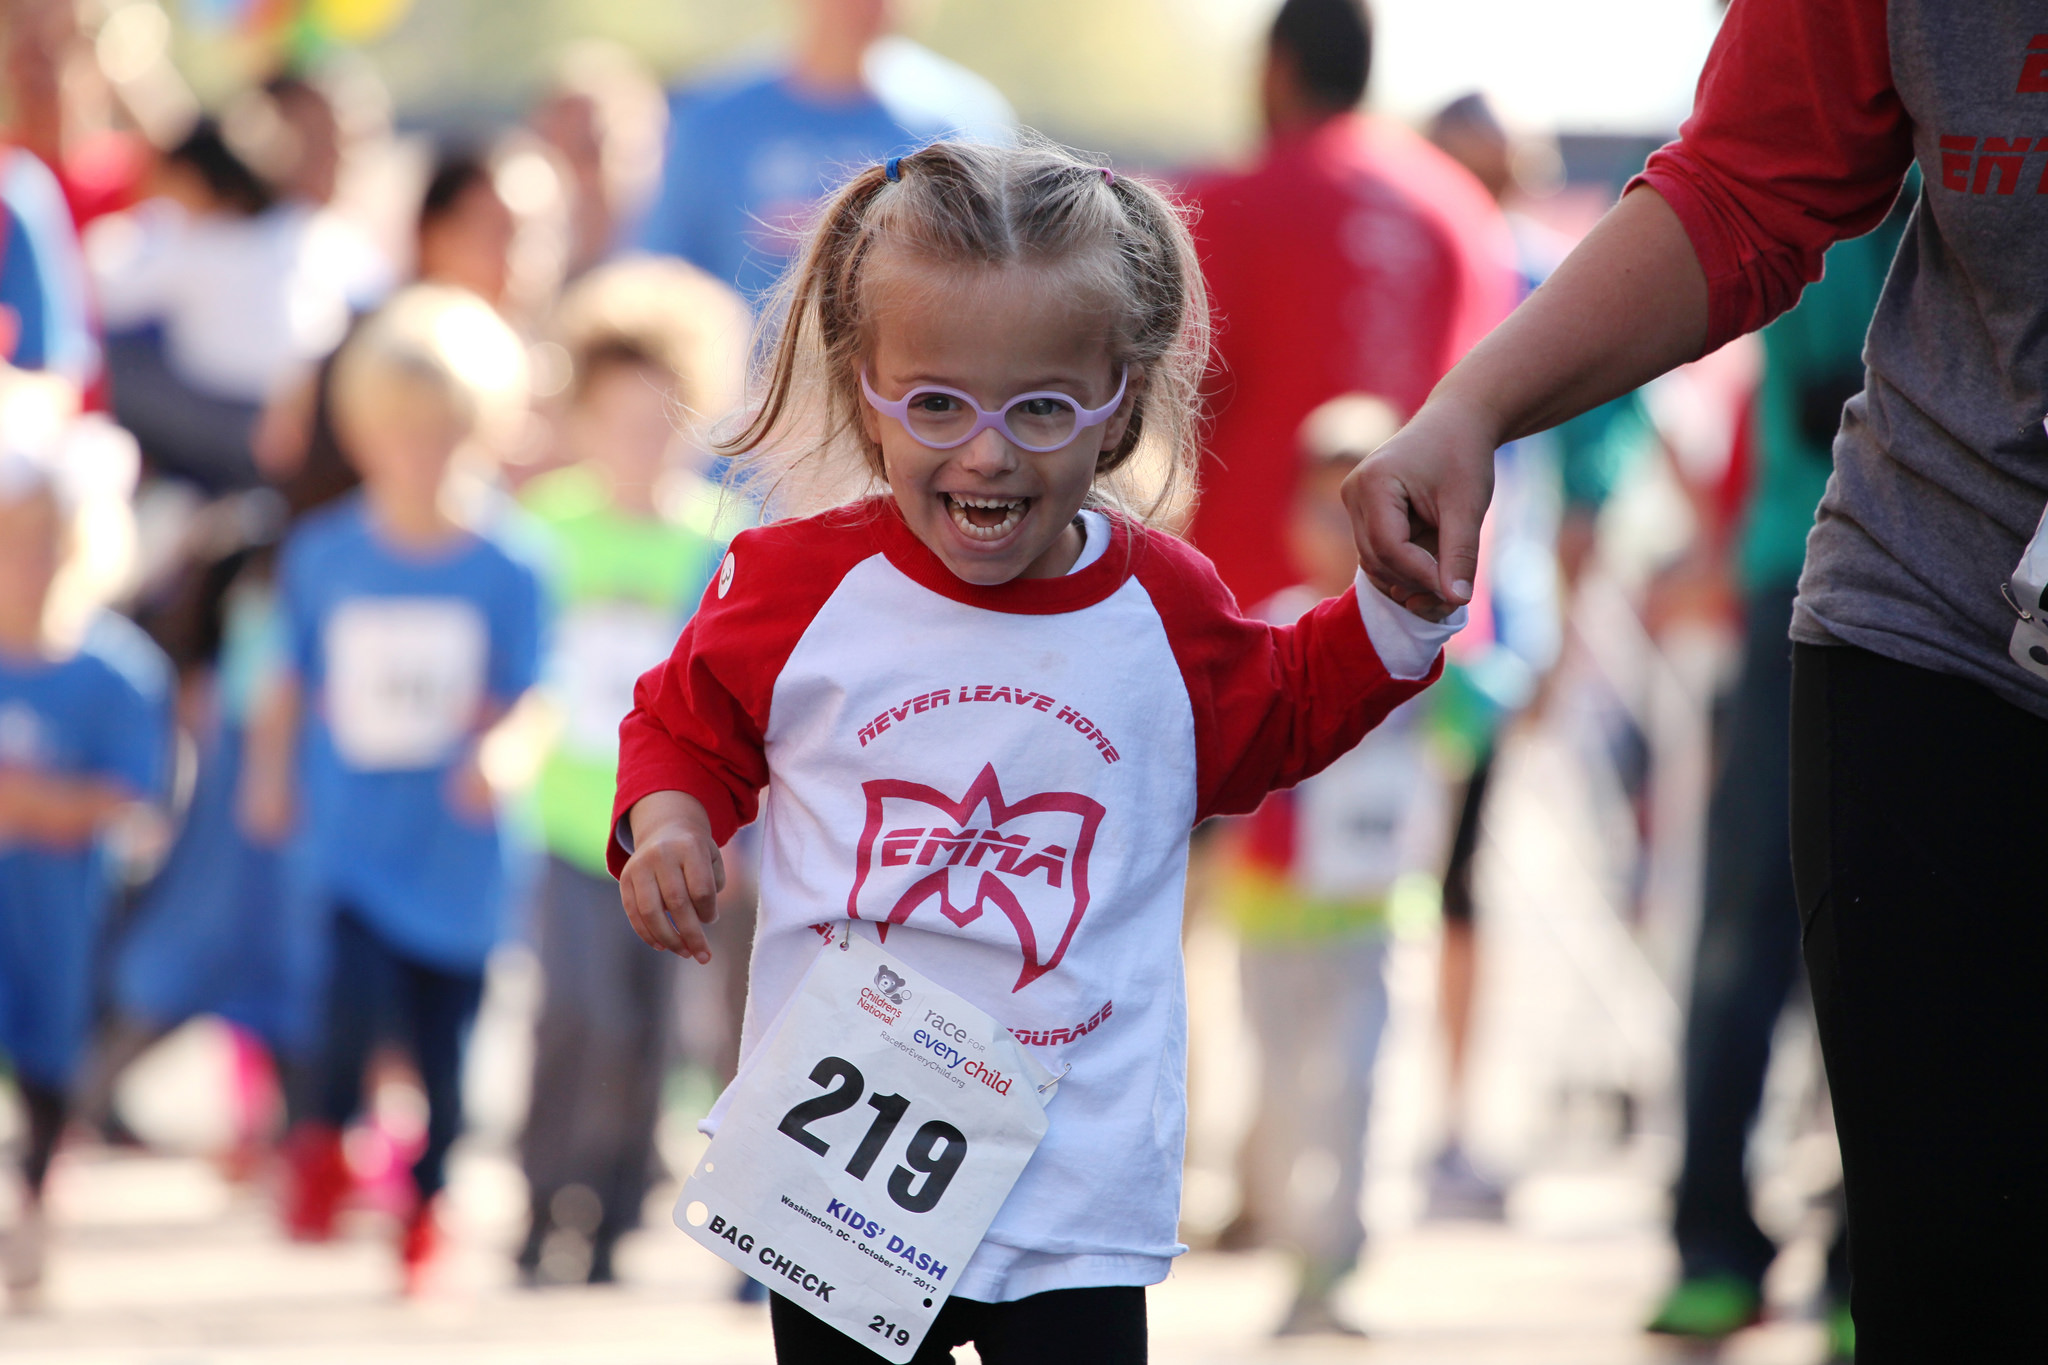 Emma Cirks at the 2017 Race for Every Child